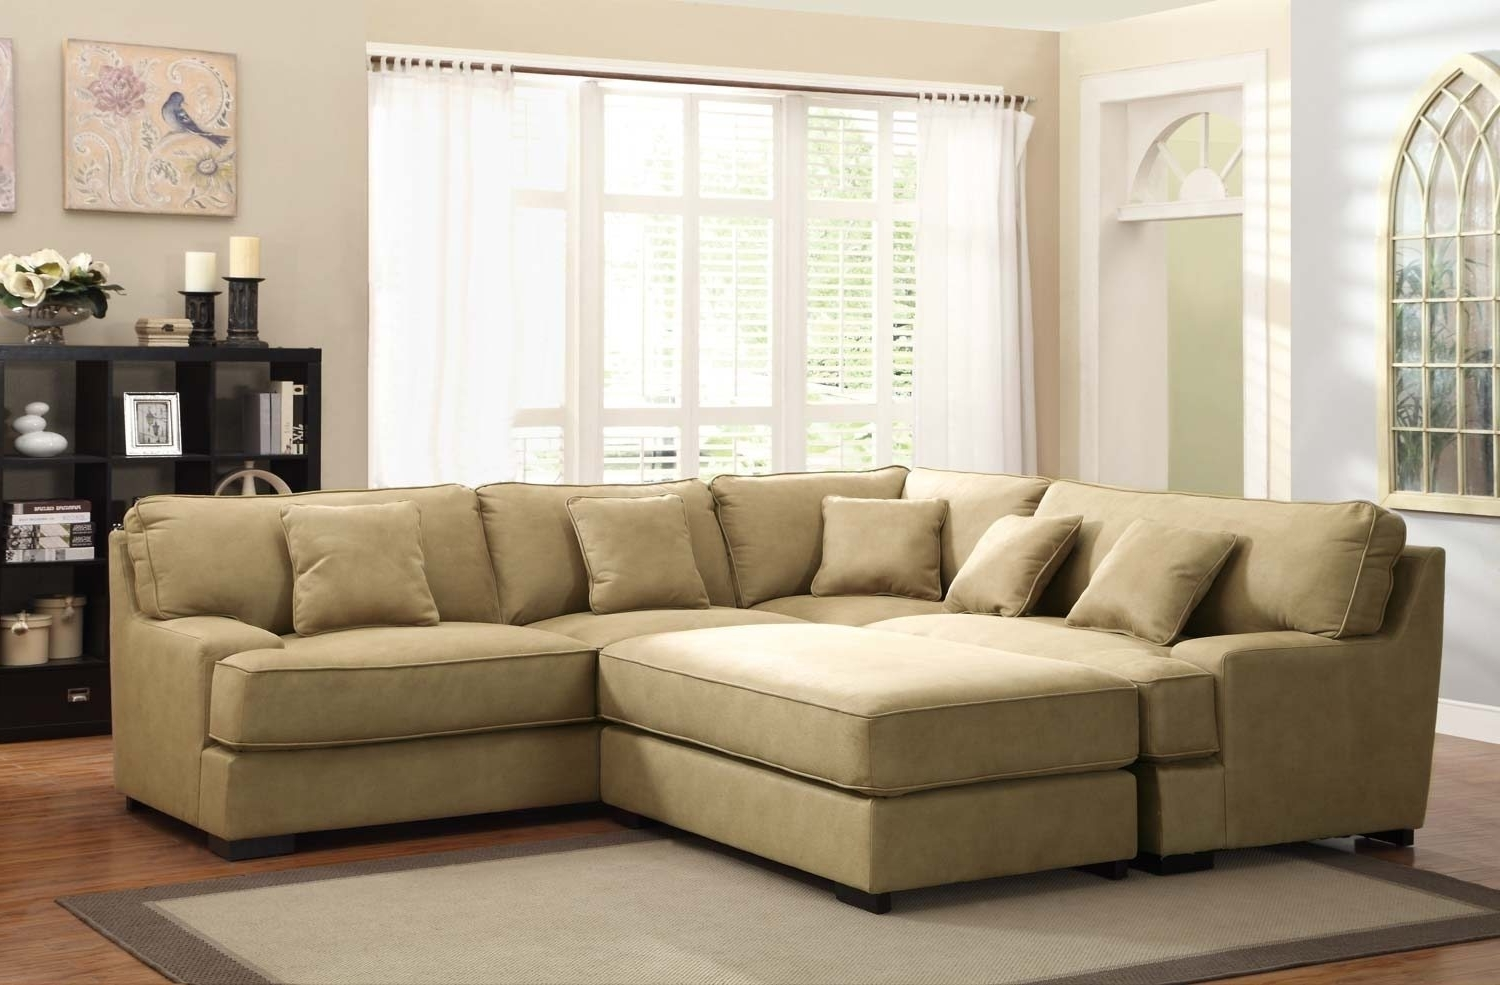 Most Popular Sofa : Elegant Oversized Sectional Sofa Picture Oversized For Couches With Large Ottoman (View 15 of 20)